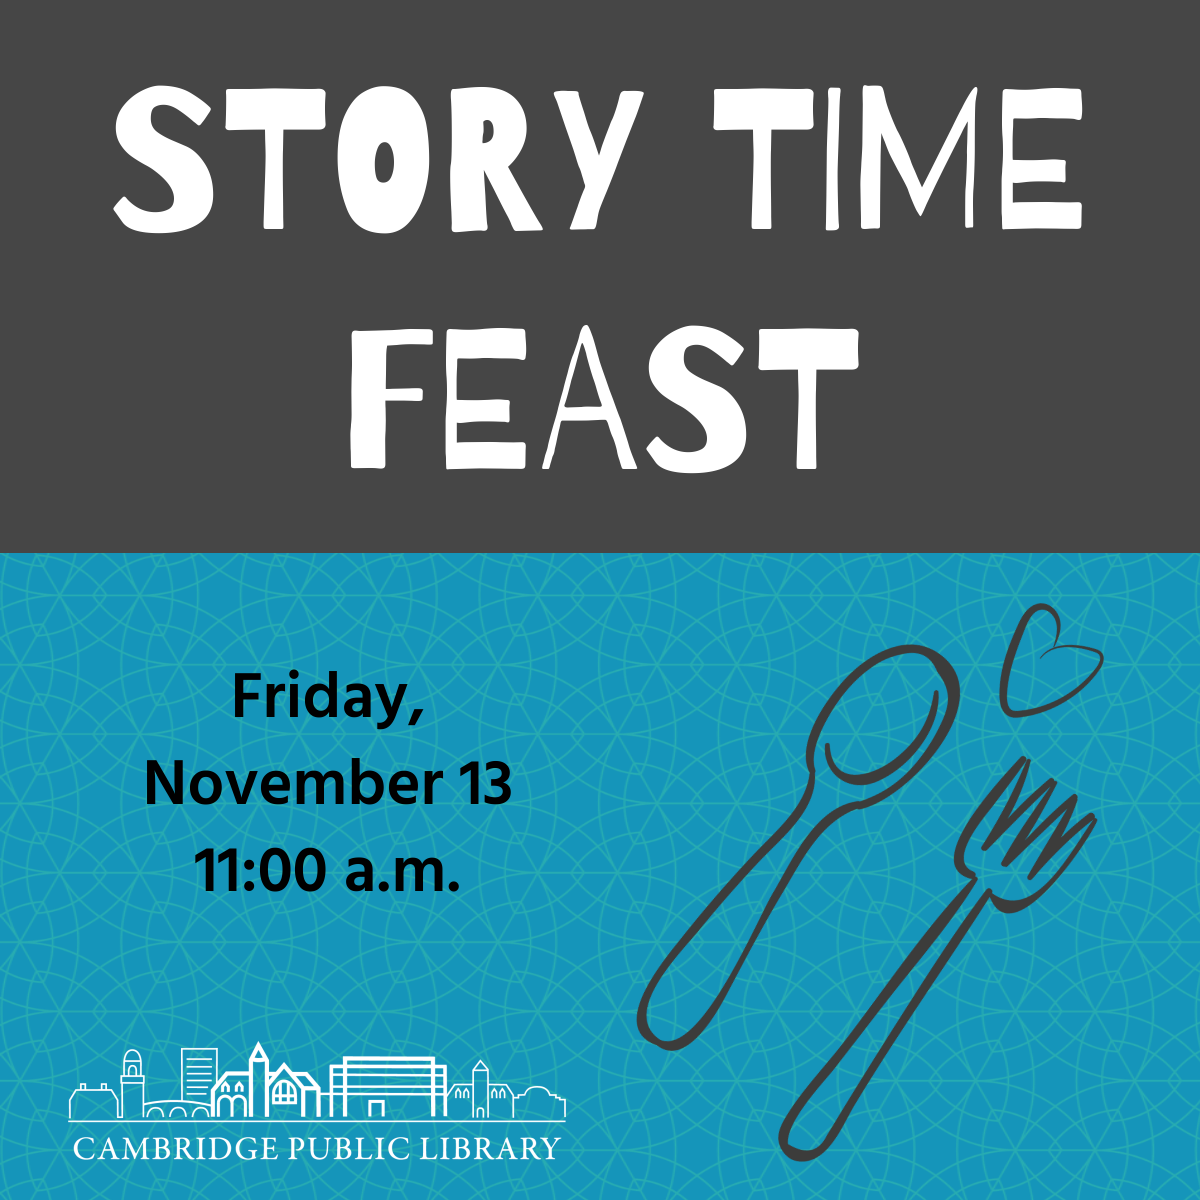 Story Time Feast